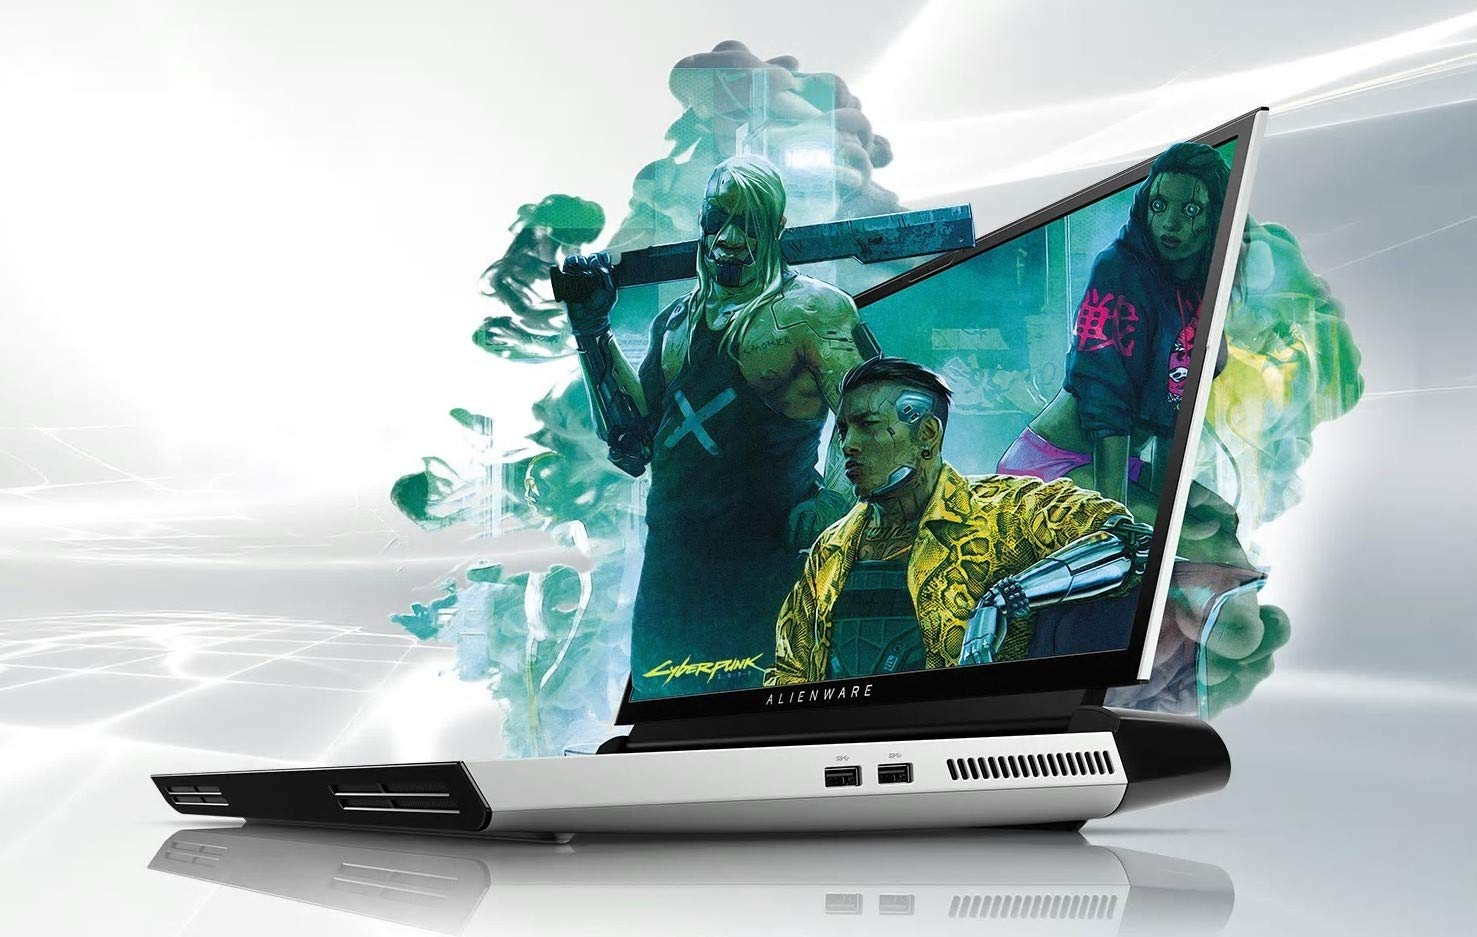 """Area 51M Gaming Laptop Welcome to A New ERA with 9TH GEN Intel CORE I9-9900K GEFORCE RTX 2080 8GB GDDR6 17.3"""" FHD 144HZ AG IPS G-SYNC TOBII EYETRACKING (512GB SSD RAID